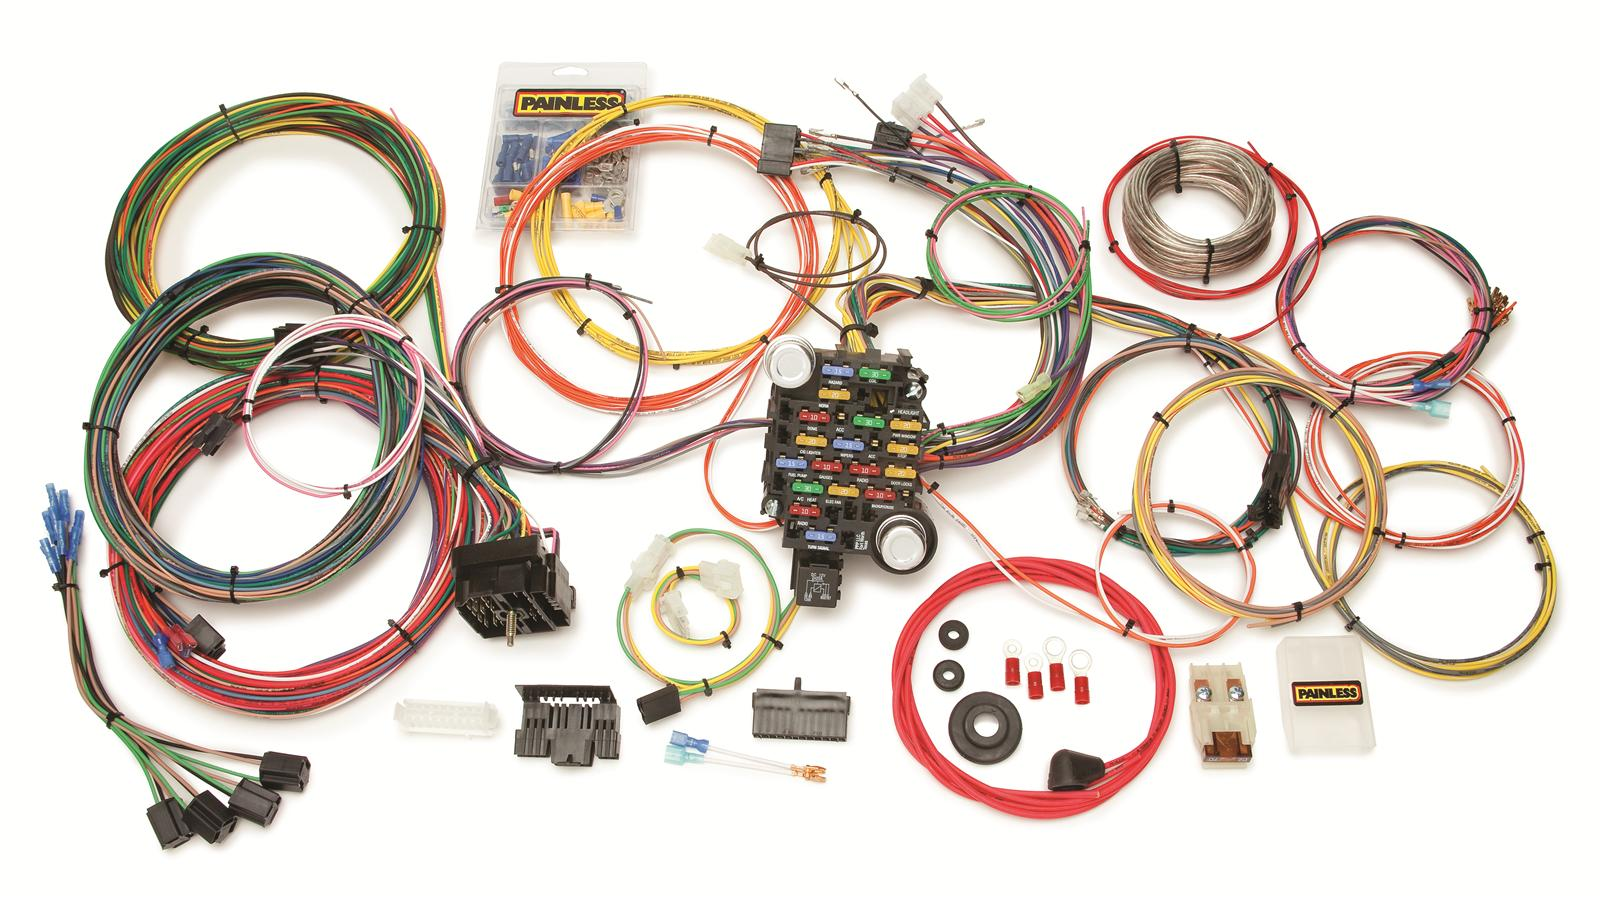 prf 10205_xl painless performance gmc chevy truck harnesses 10205 free gm truck wiring harness at readyjetset.co